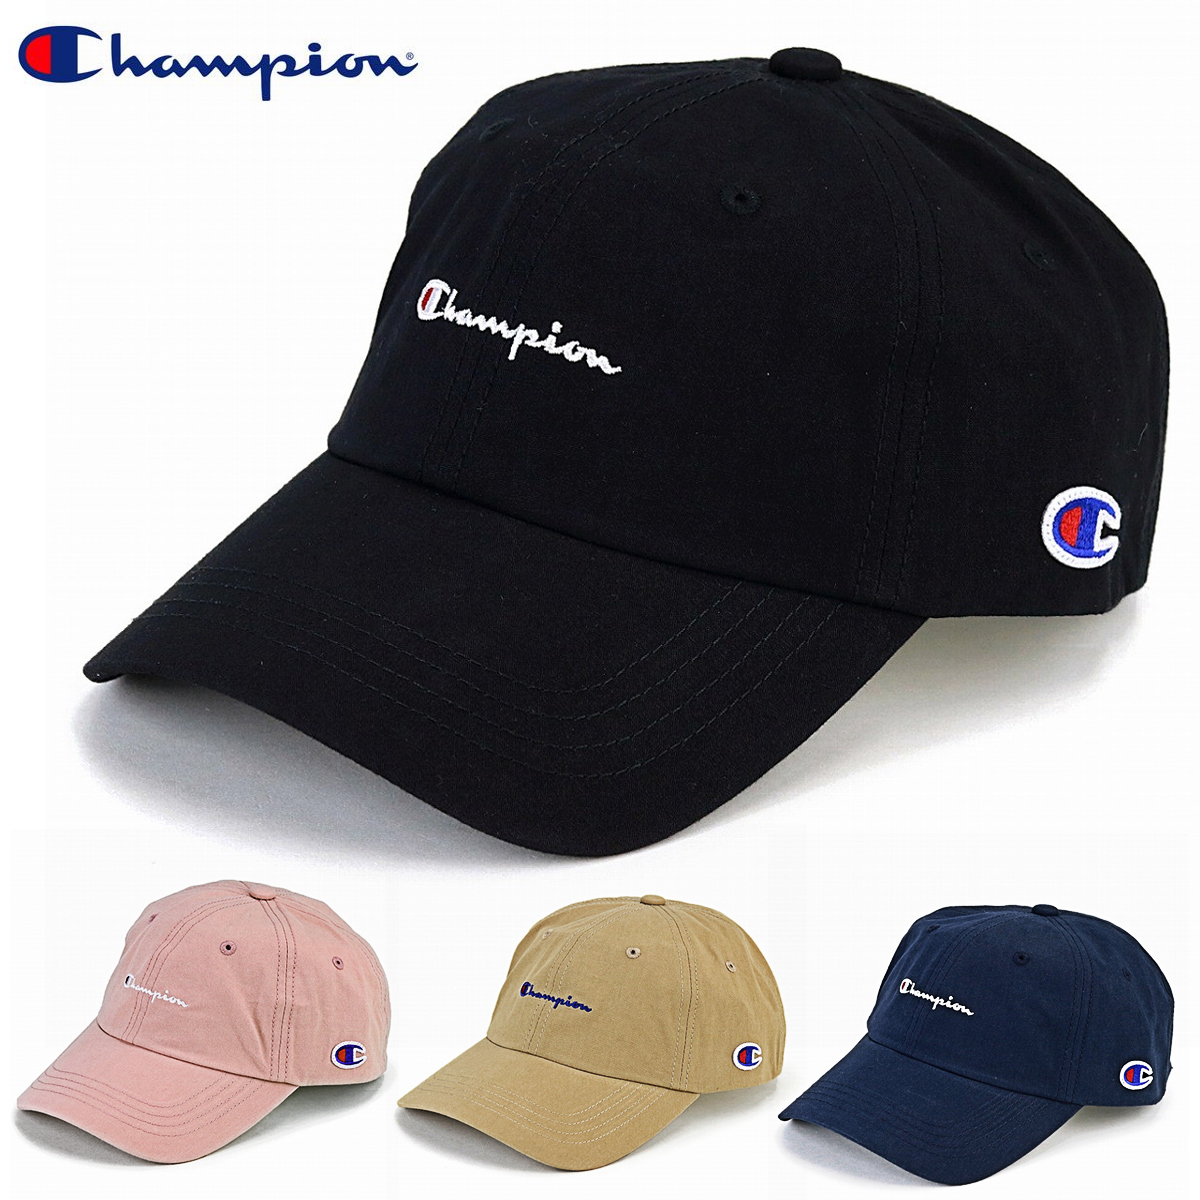 9030028dec4 Champion cap black men champion low cap Lady s logo cap Shin pull plain  casual coordinates hat sports cap unisex adjustable size   black  baseball  cap  ...